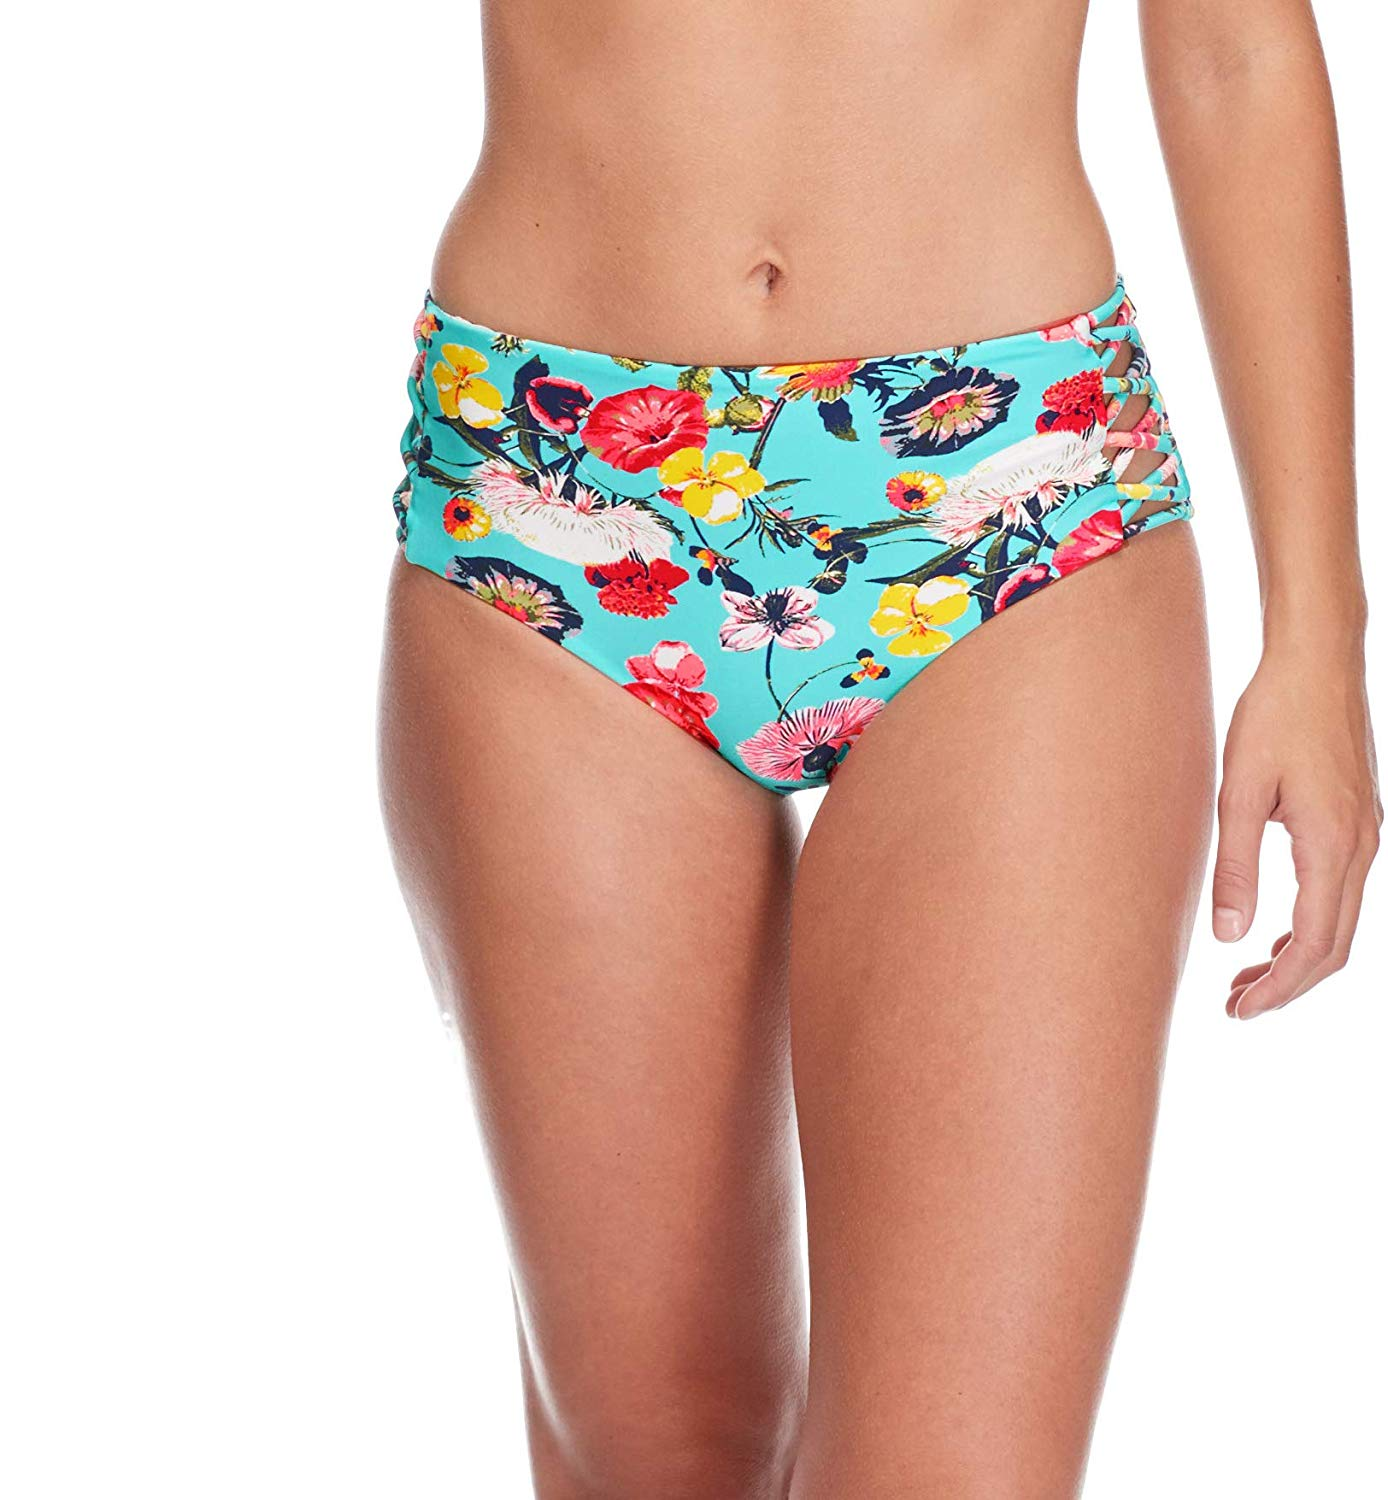 92727aea1b5 Details about Body Glove Women's Swimwear Blue Size XL Bikini Bottom Floral  High-Waisted #578